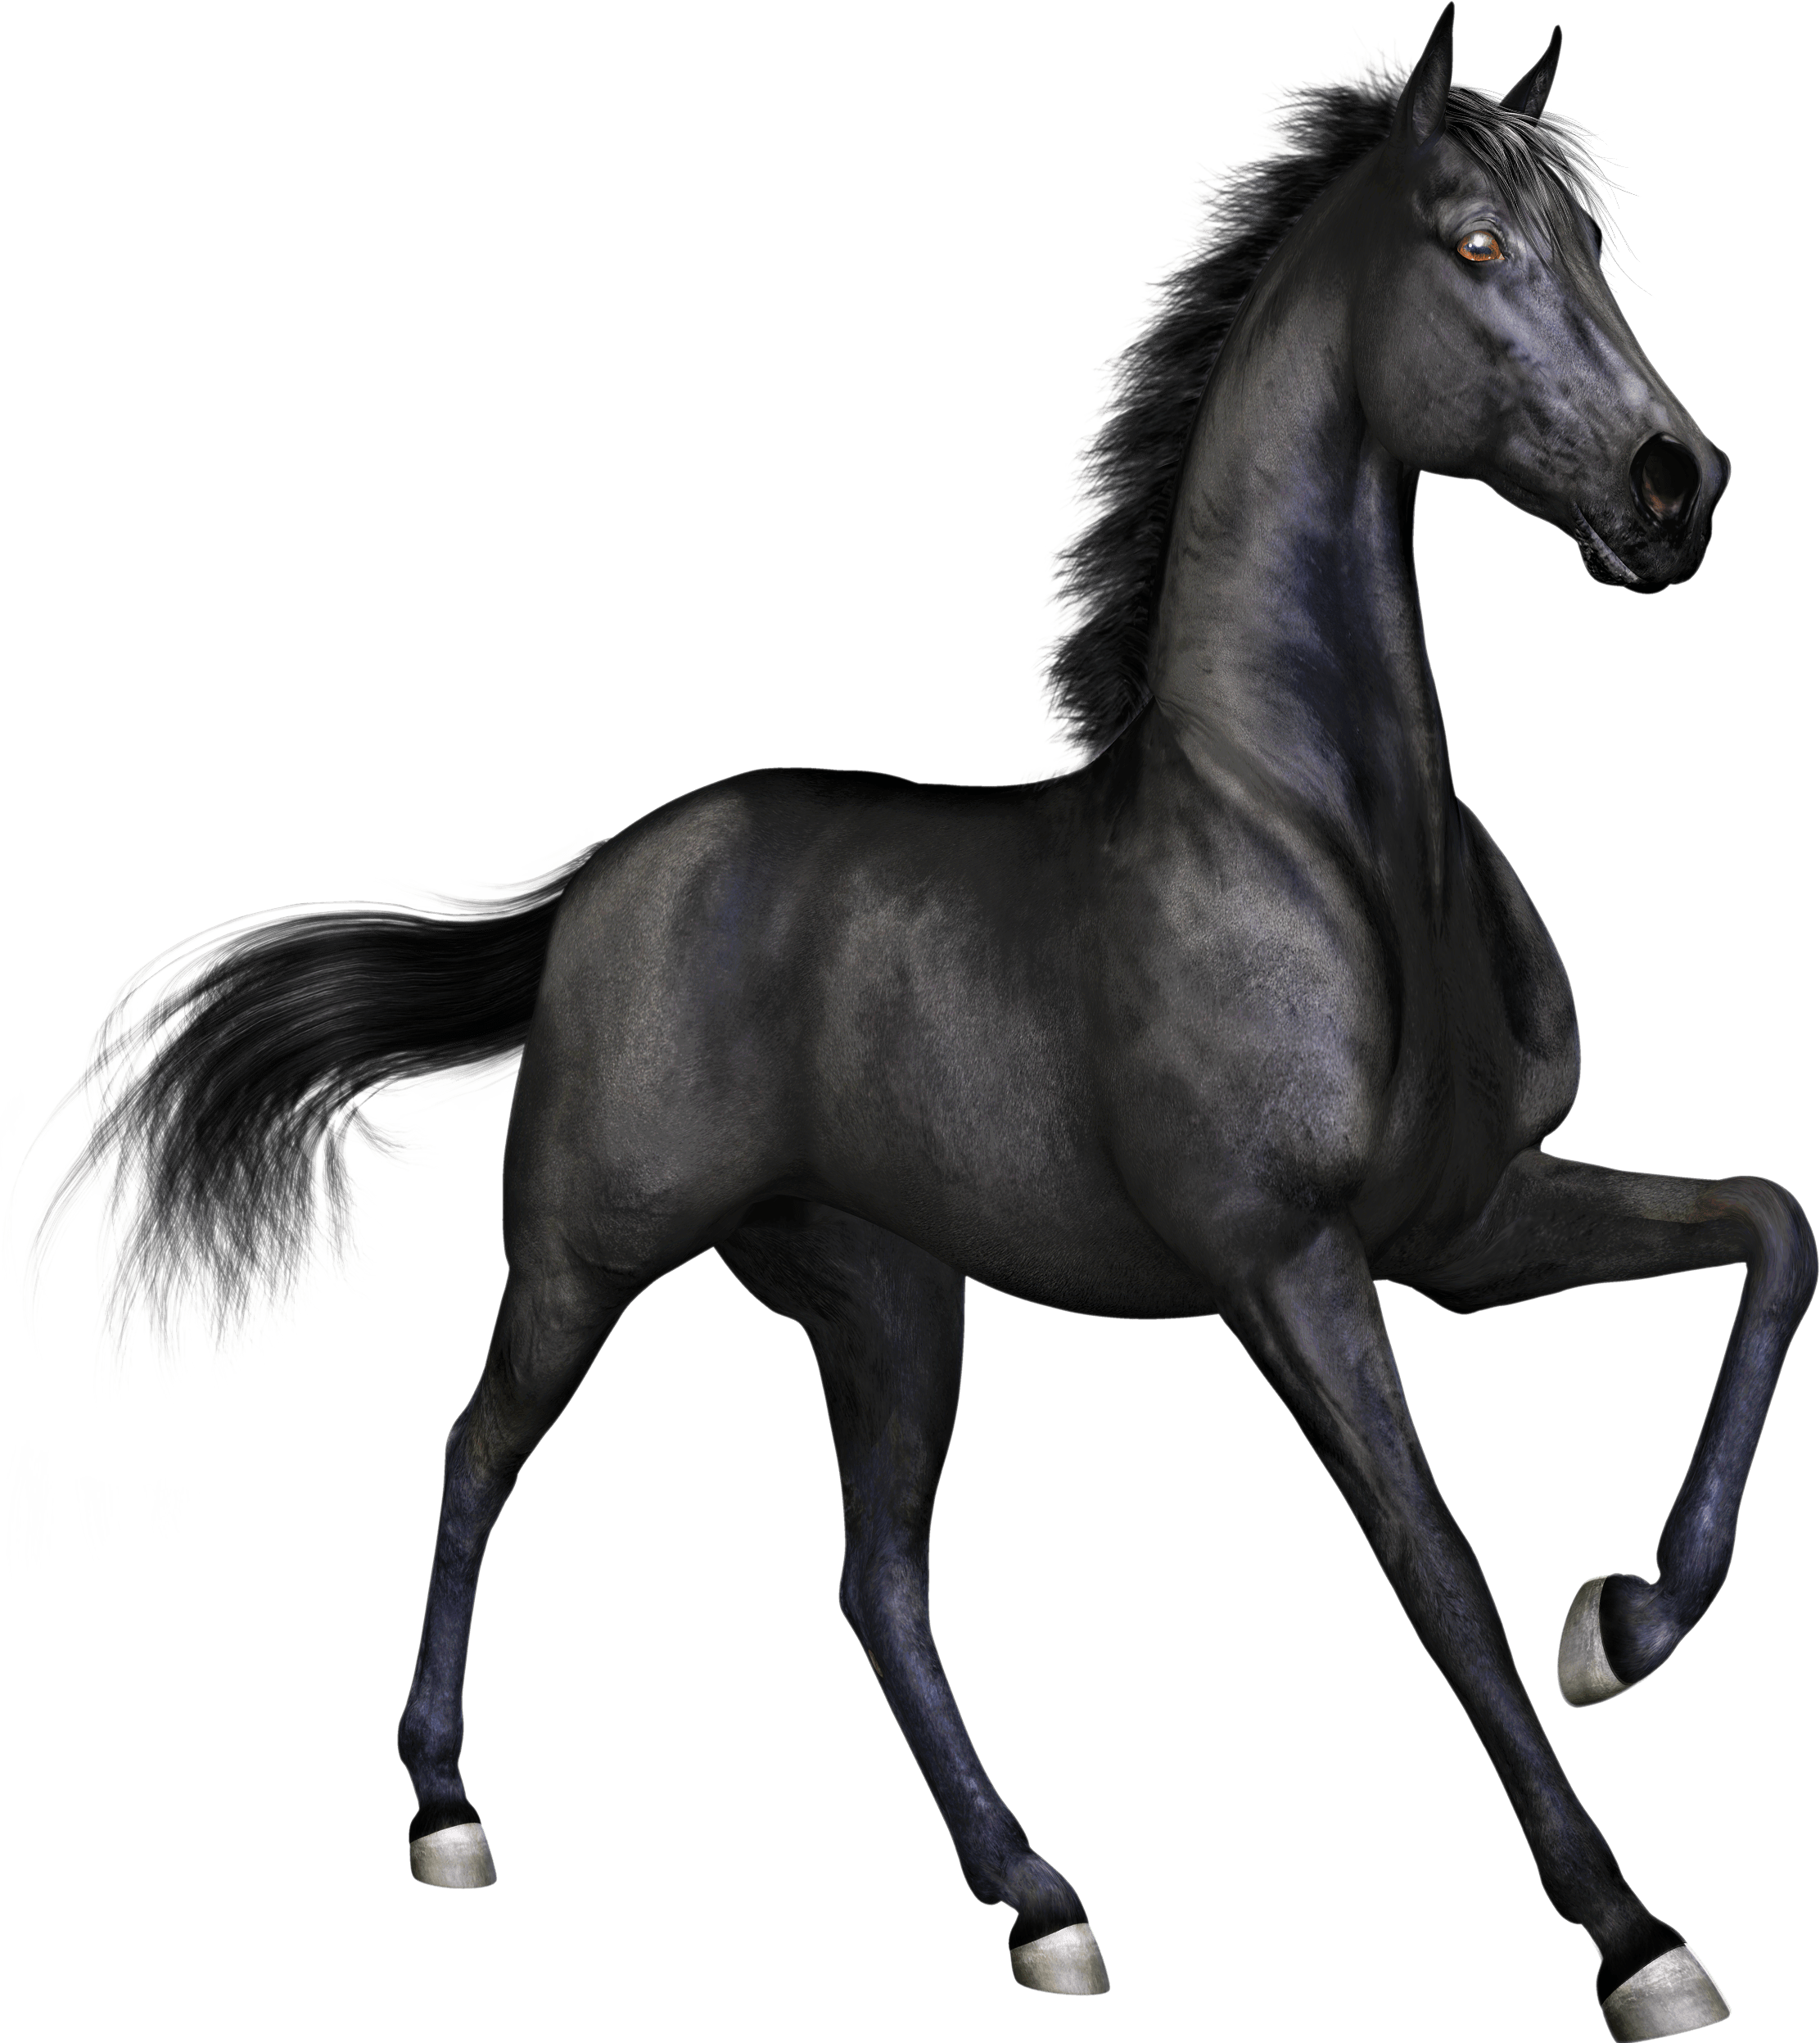 Download Horse Images Png Black Horse Png Png Image With No Background Pngkey Com